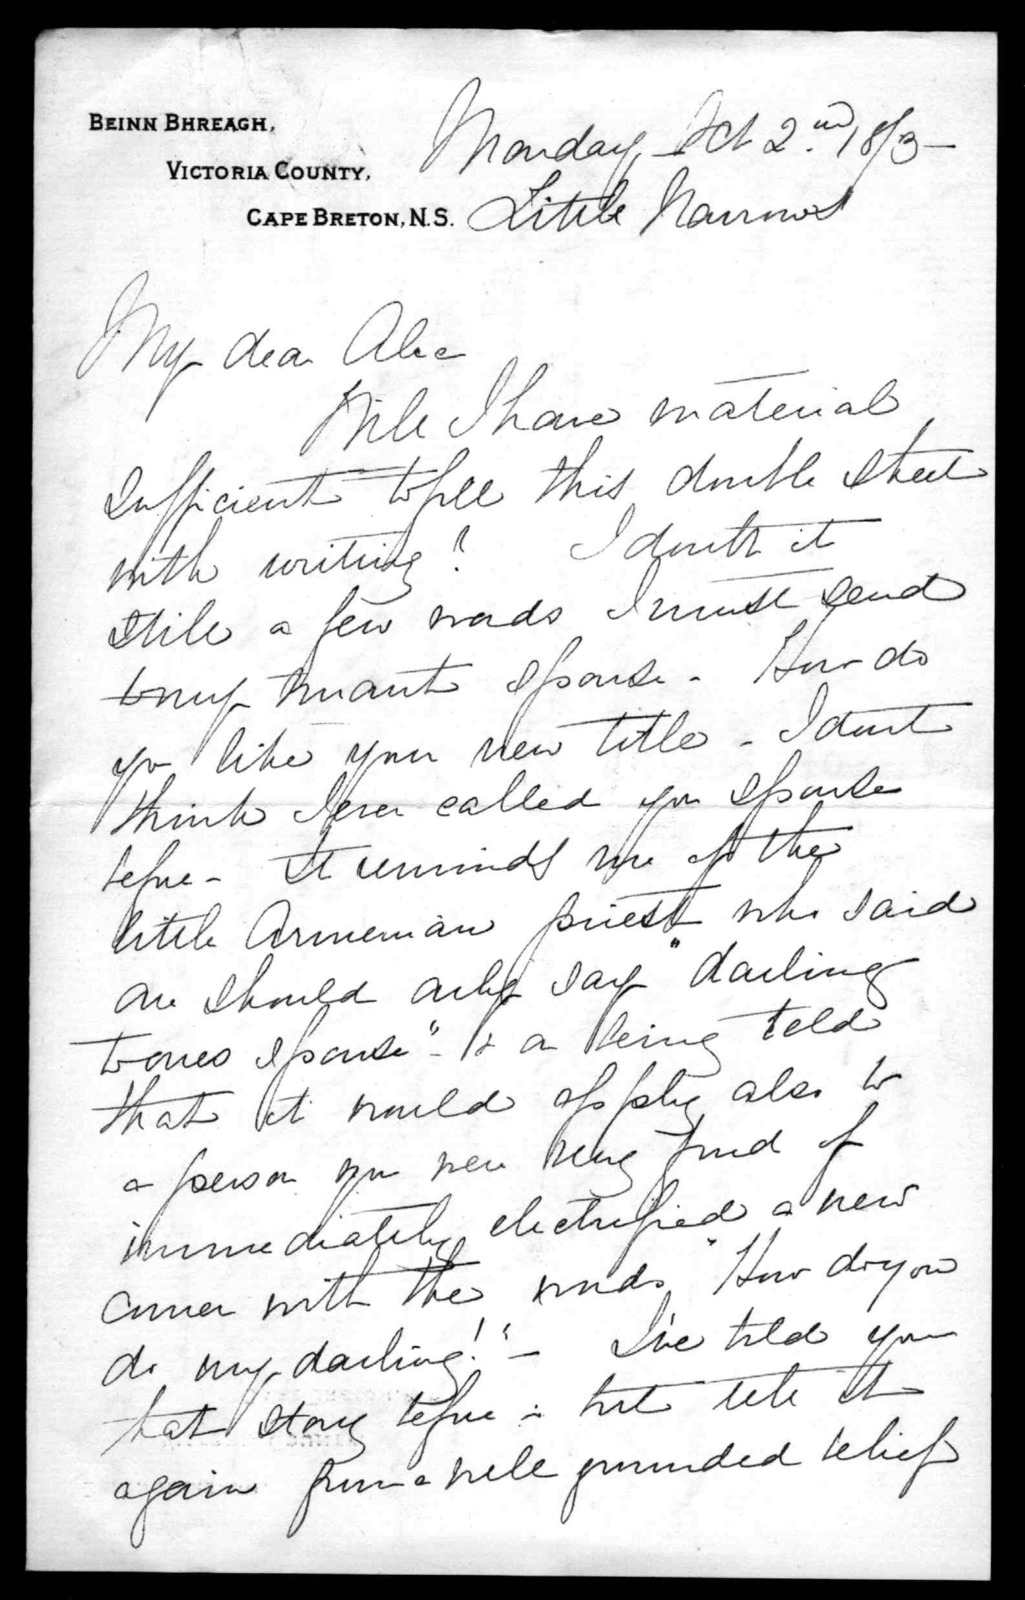 Letter from Mabel Hubbard Bell to Alexander Graham Bell, October 2, 1893